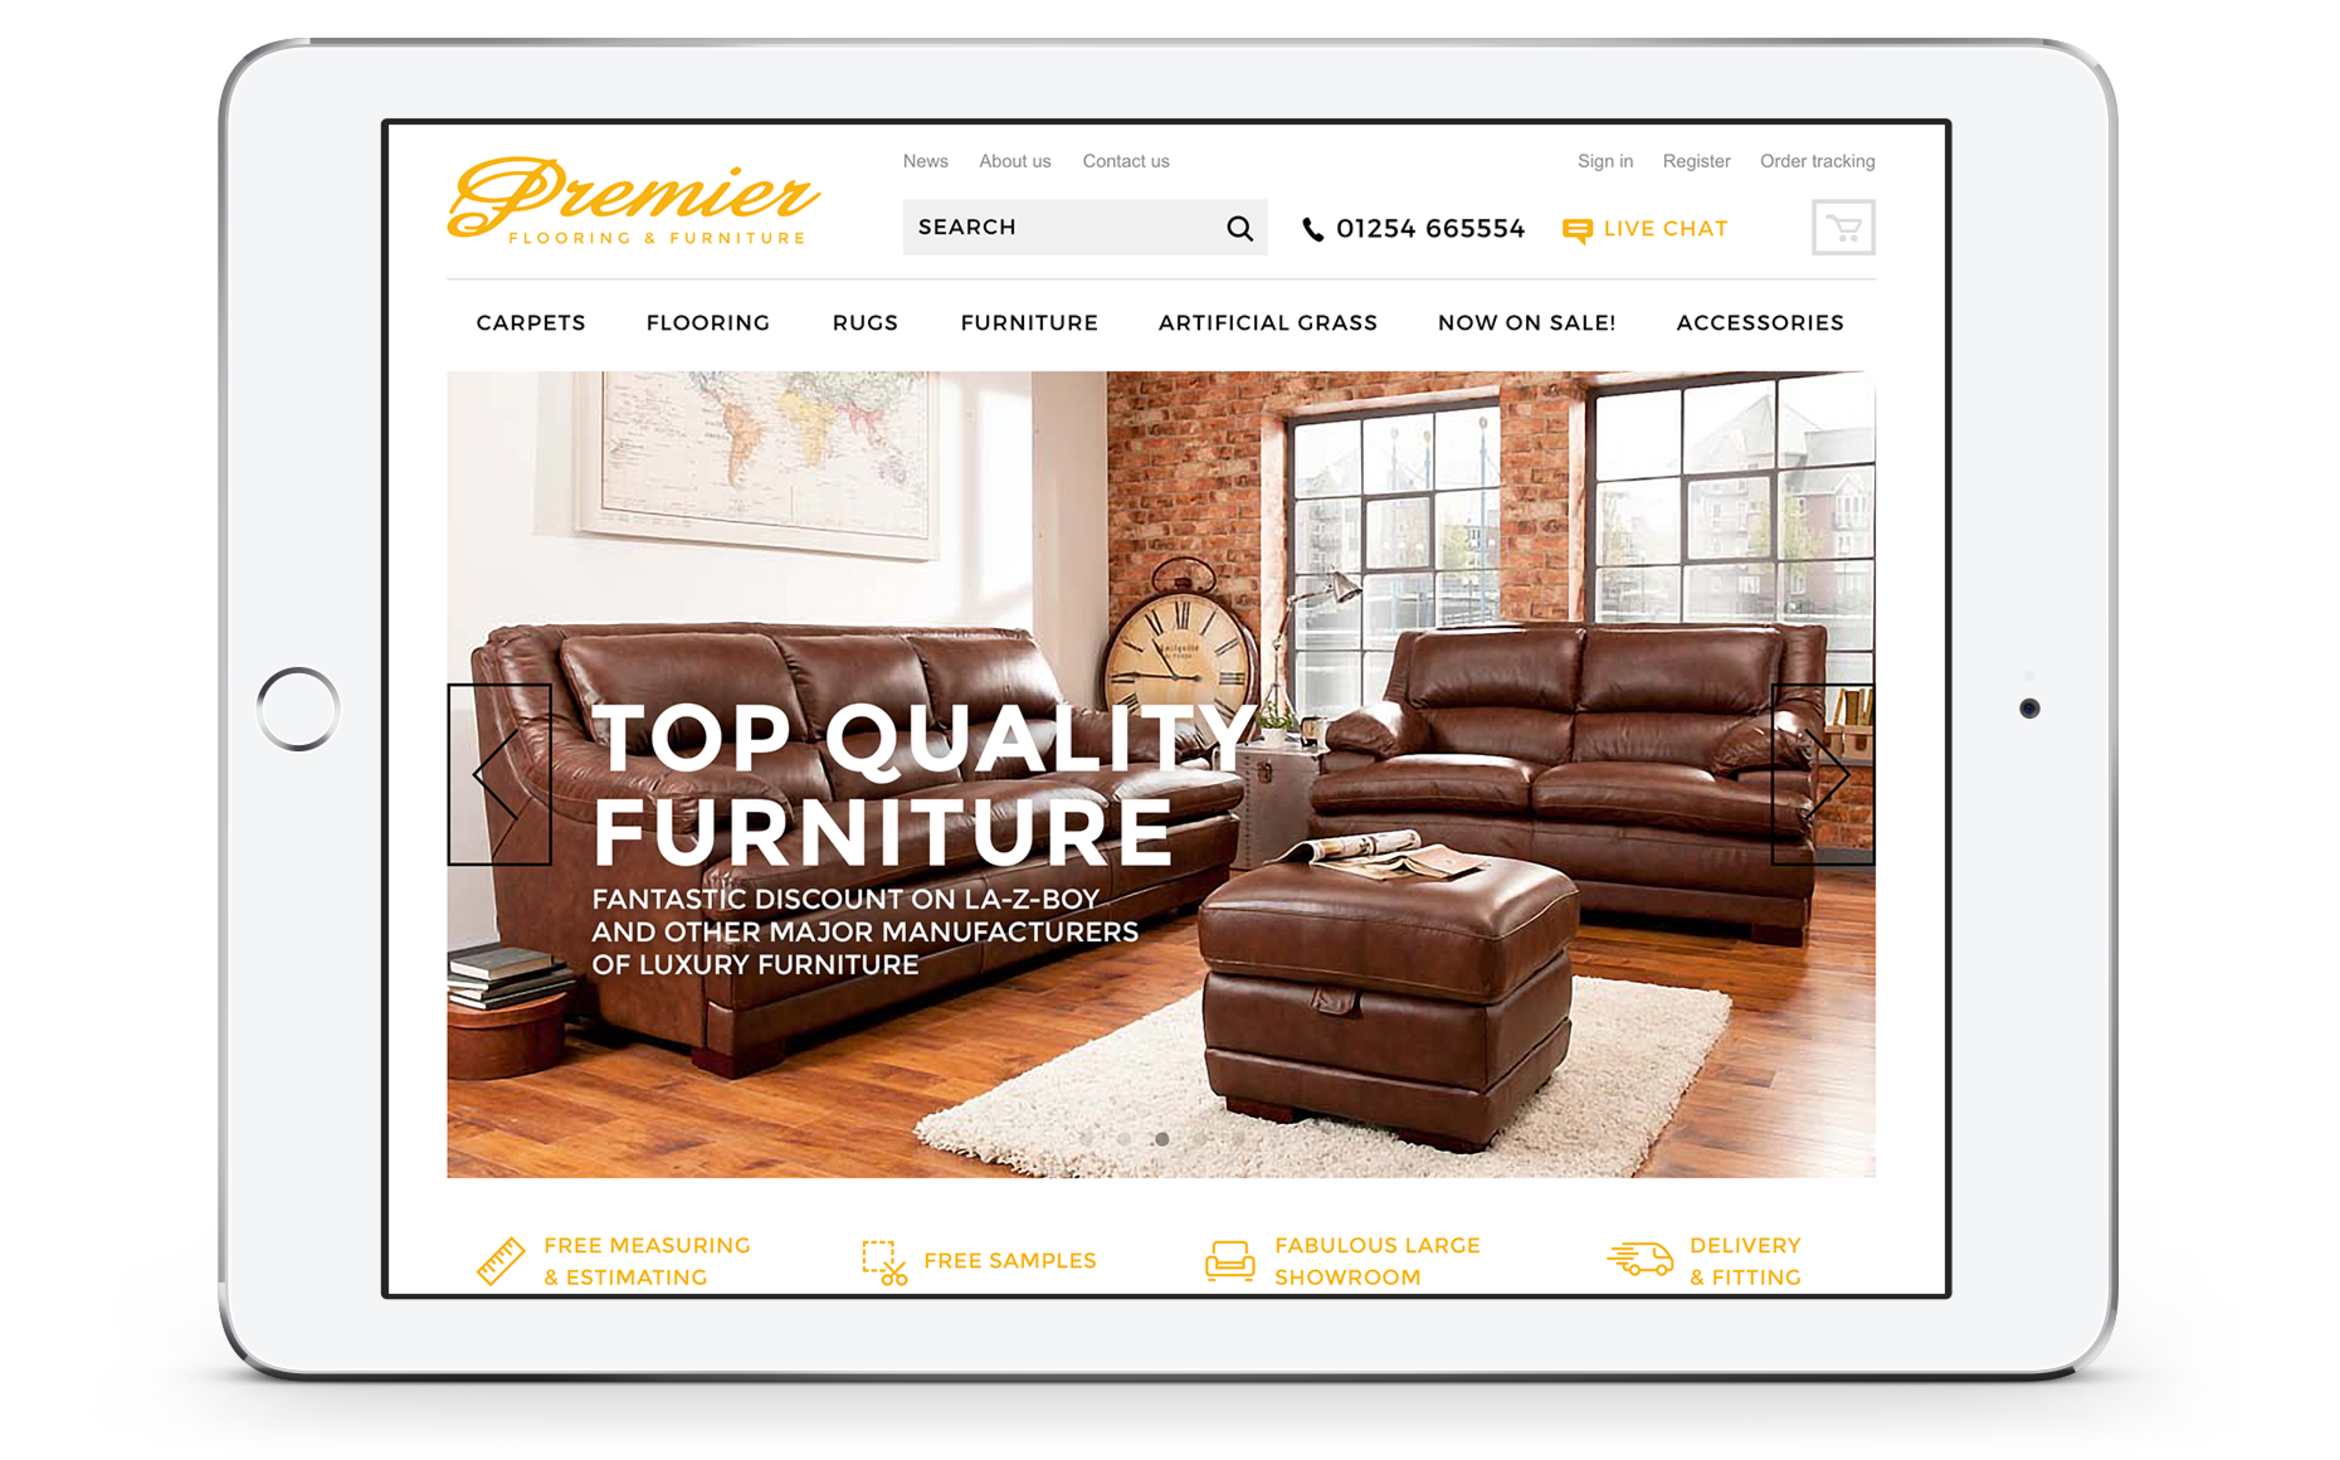 Premier Flooring & Furniture Ltd